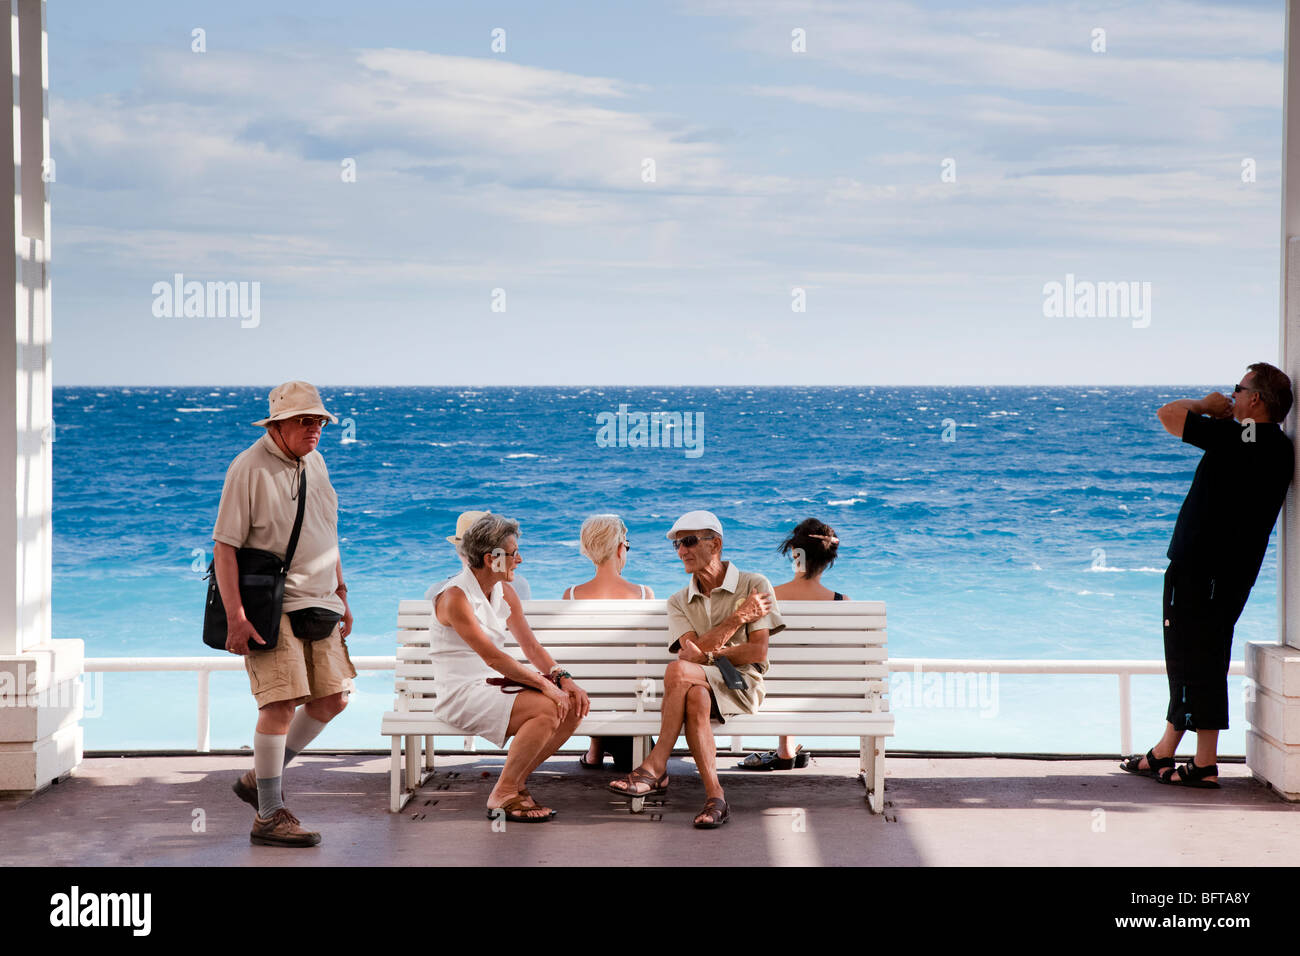 People sitting and passing time, Promenade des Anglais, Nice, Provence, France - Stock Image